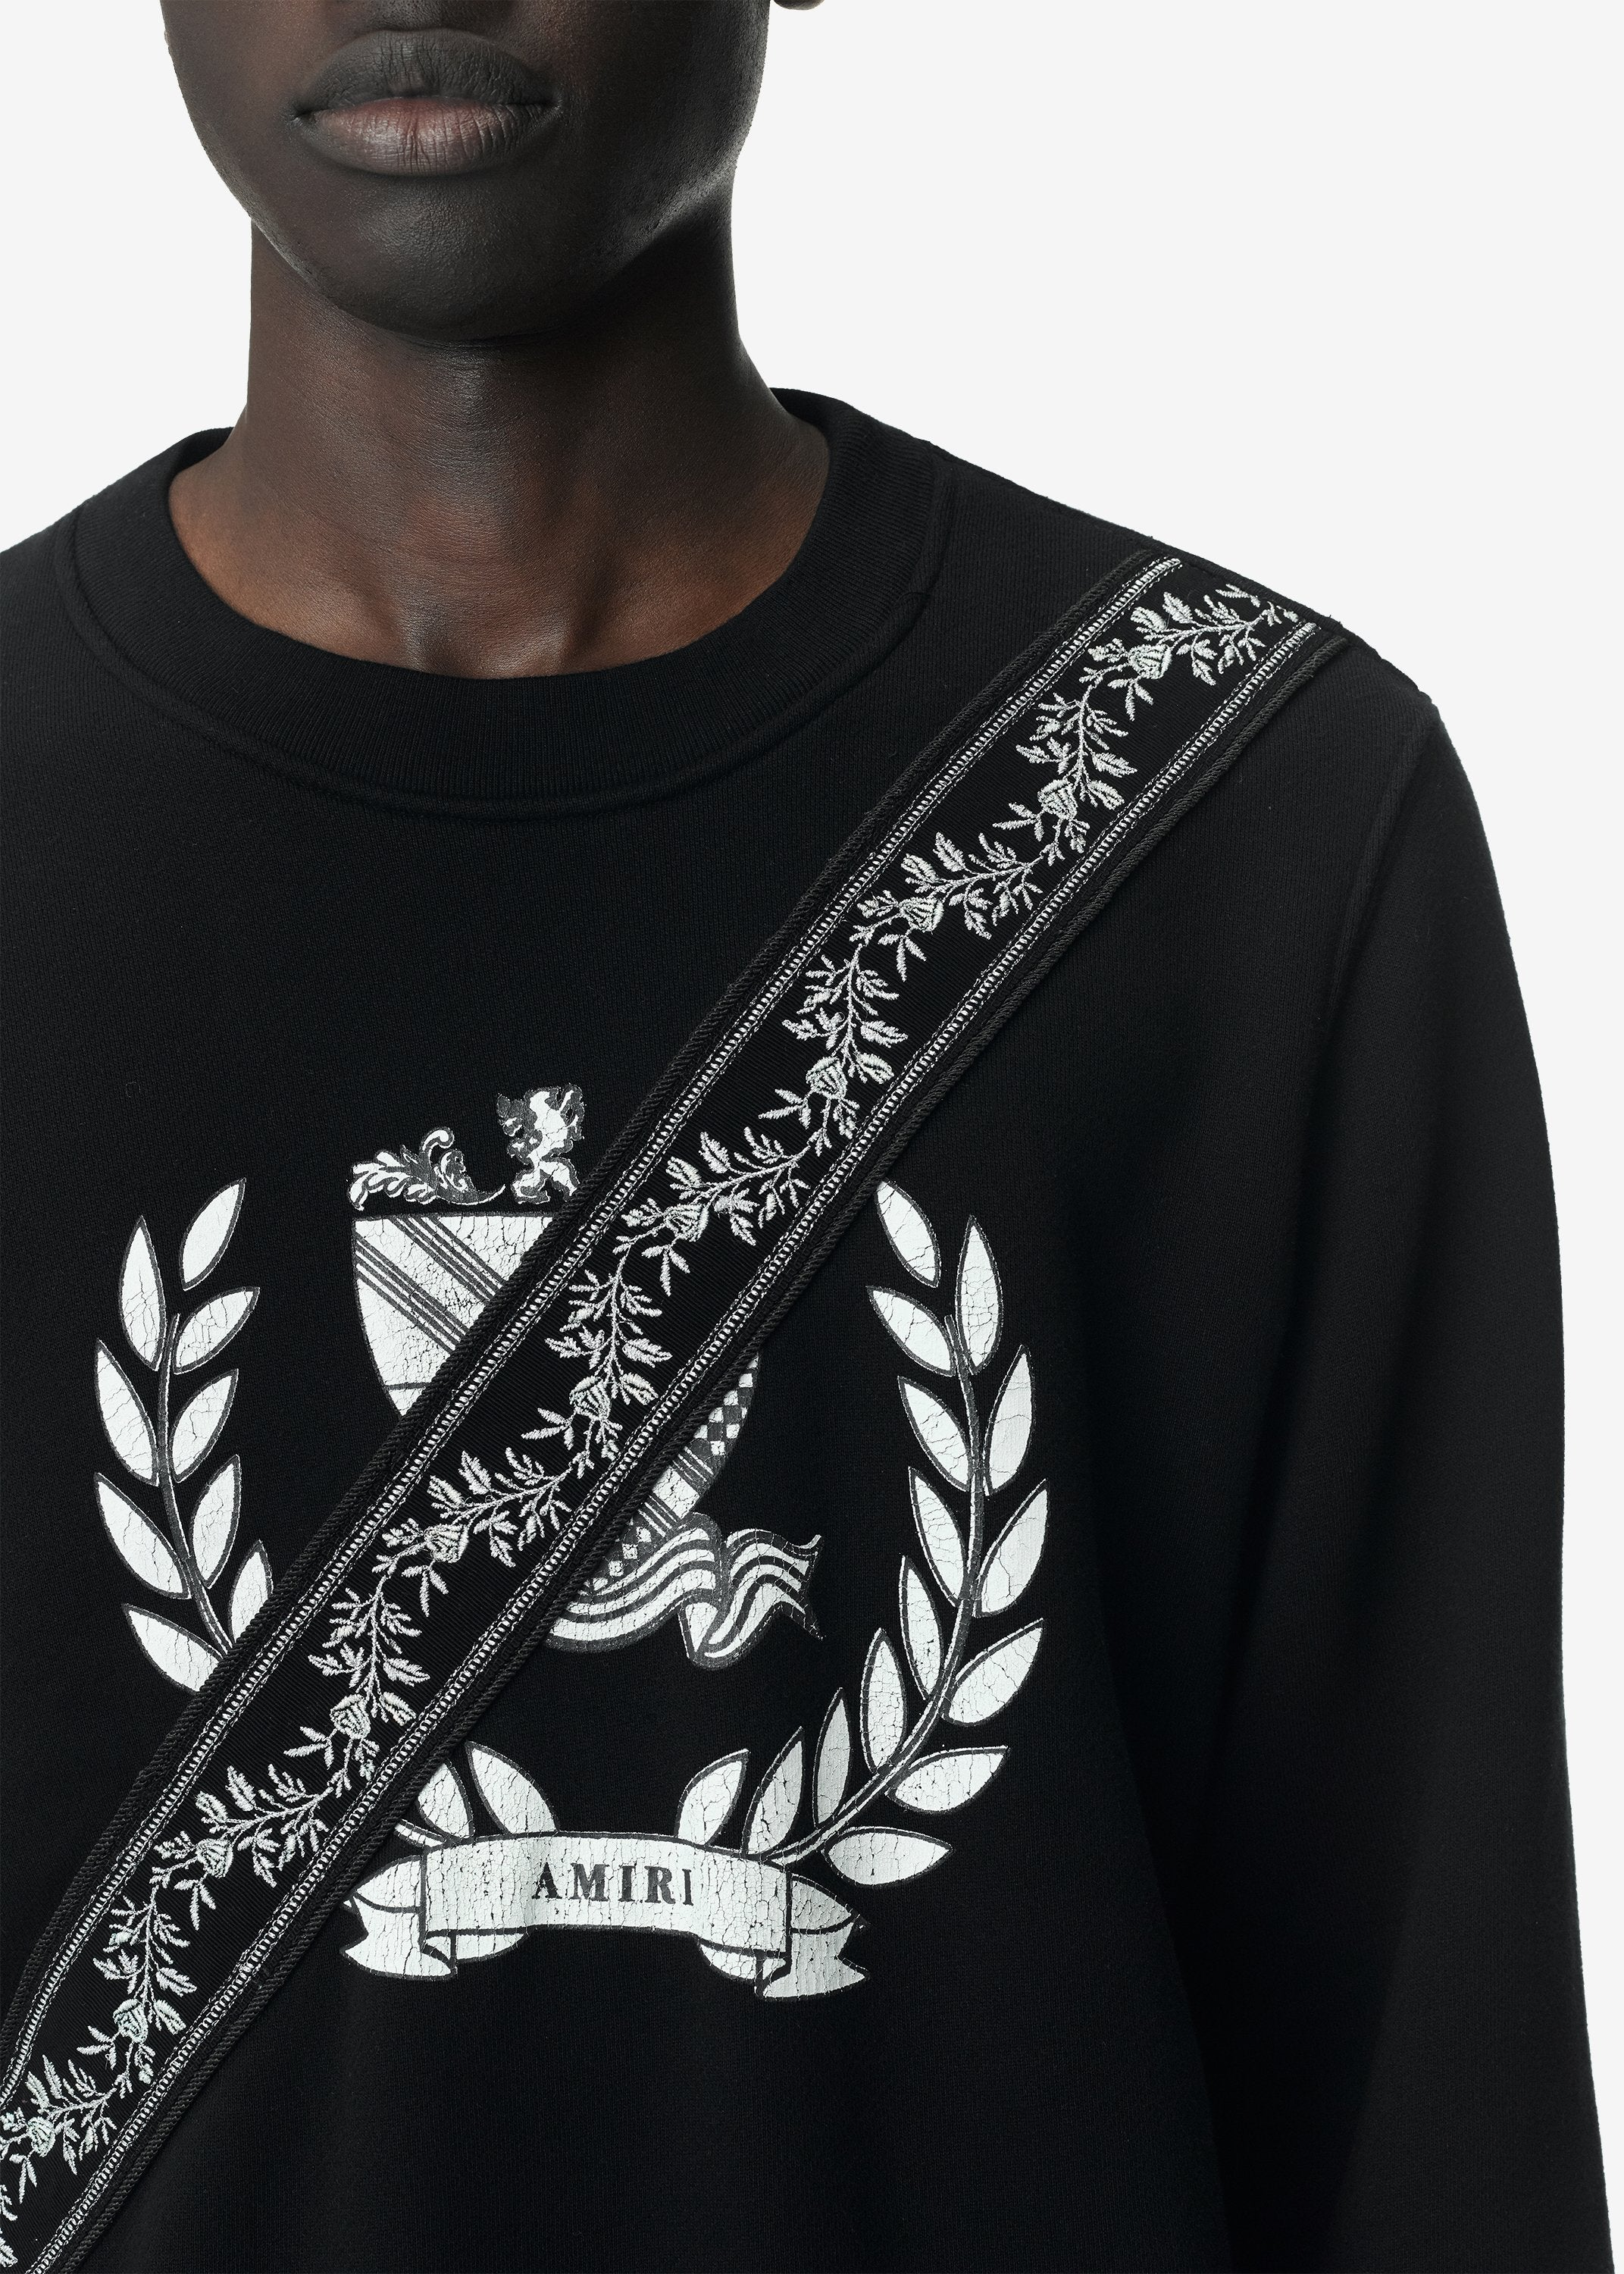 crest-guitar-strap-crewneck-web-exclusive-black-image-2